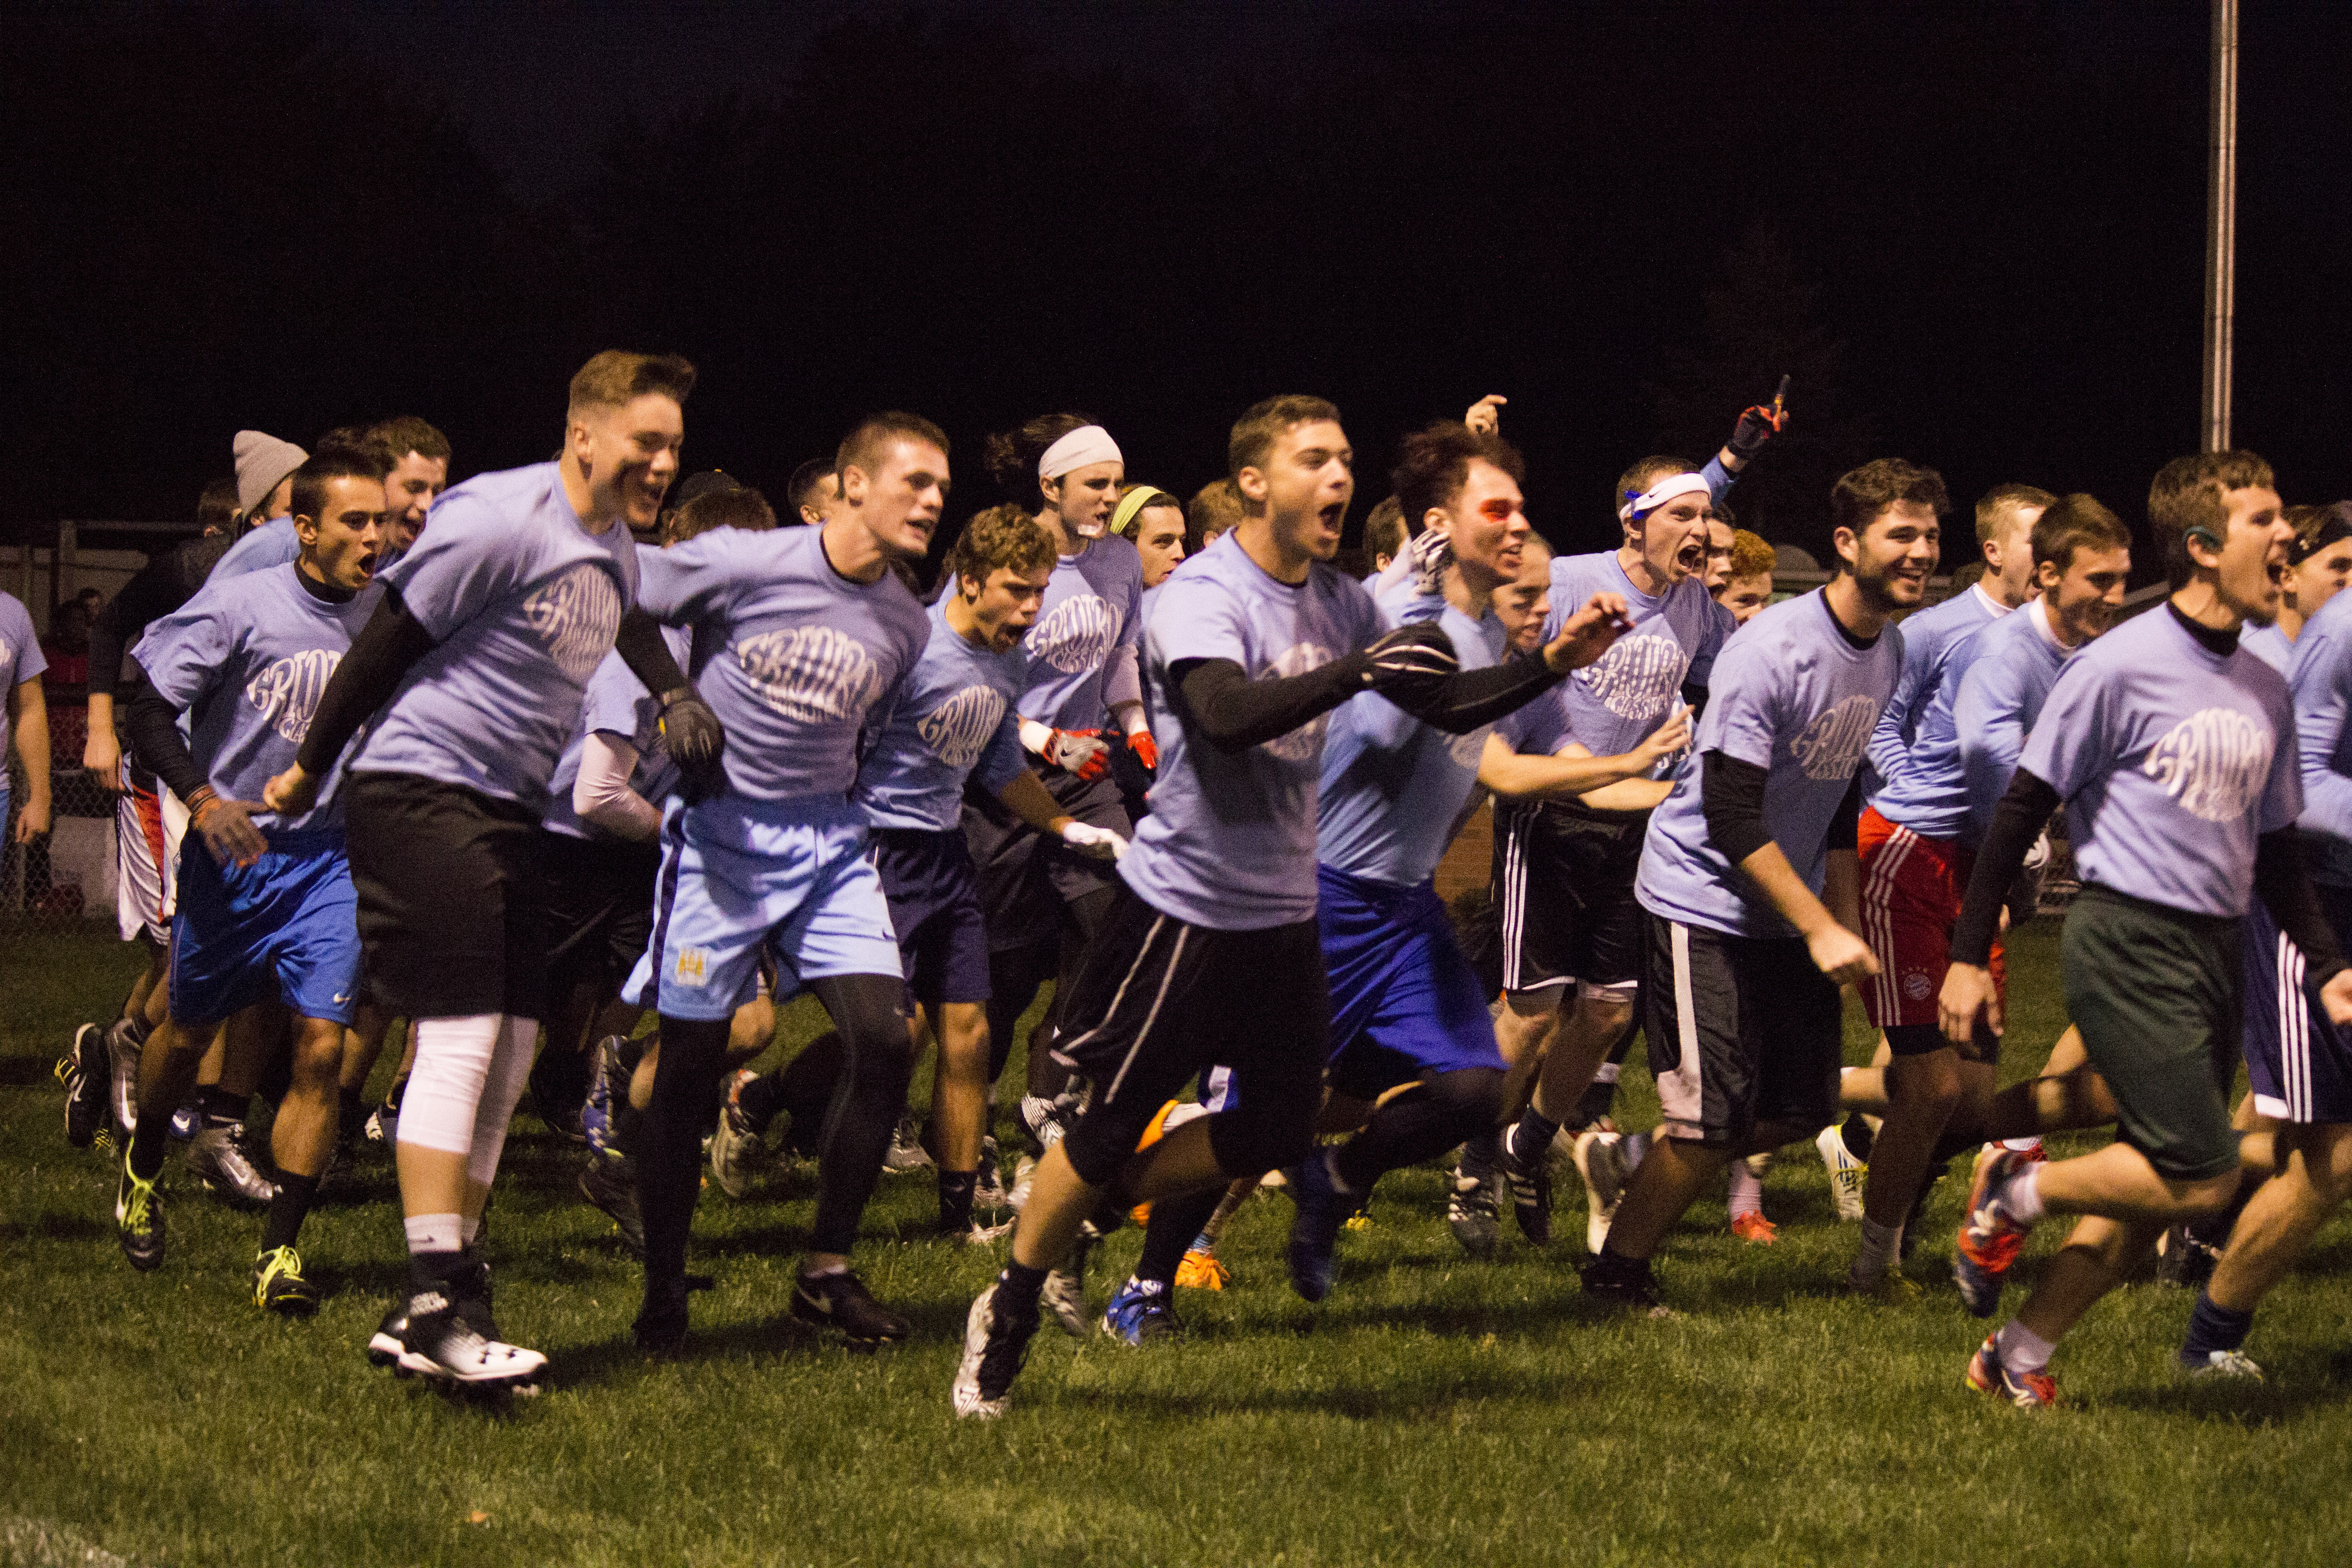 Lawlor storms the field, ready to take their first victory in 5 years. Prior to the game, the team claimed to have no set plays.